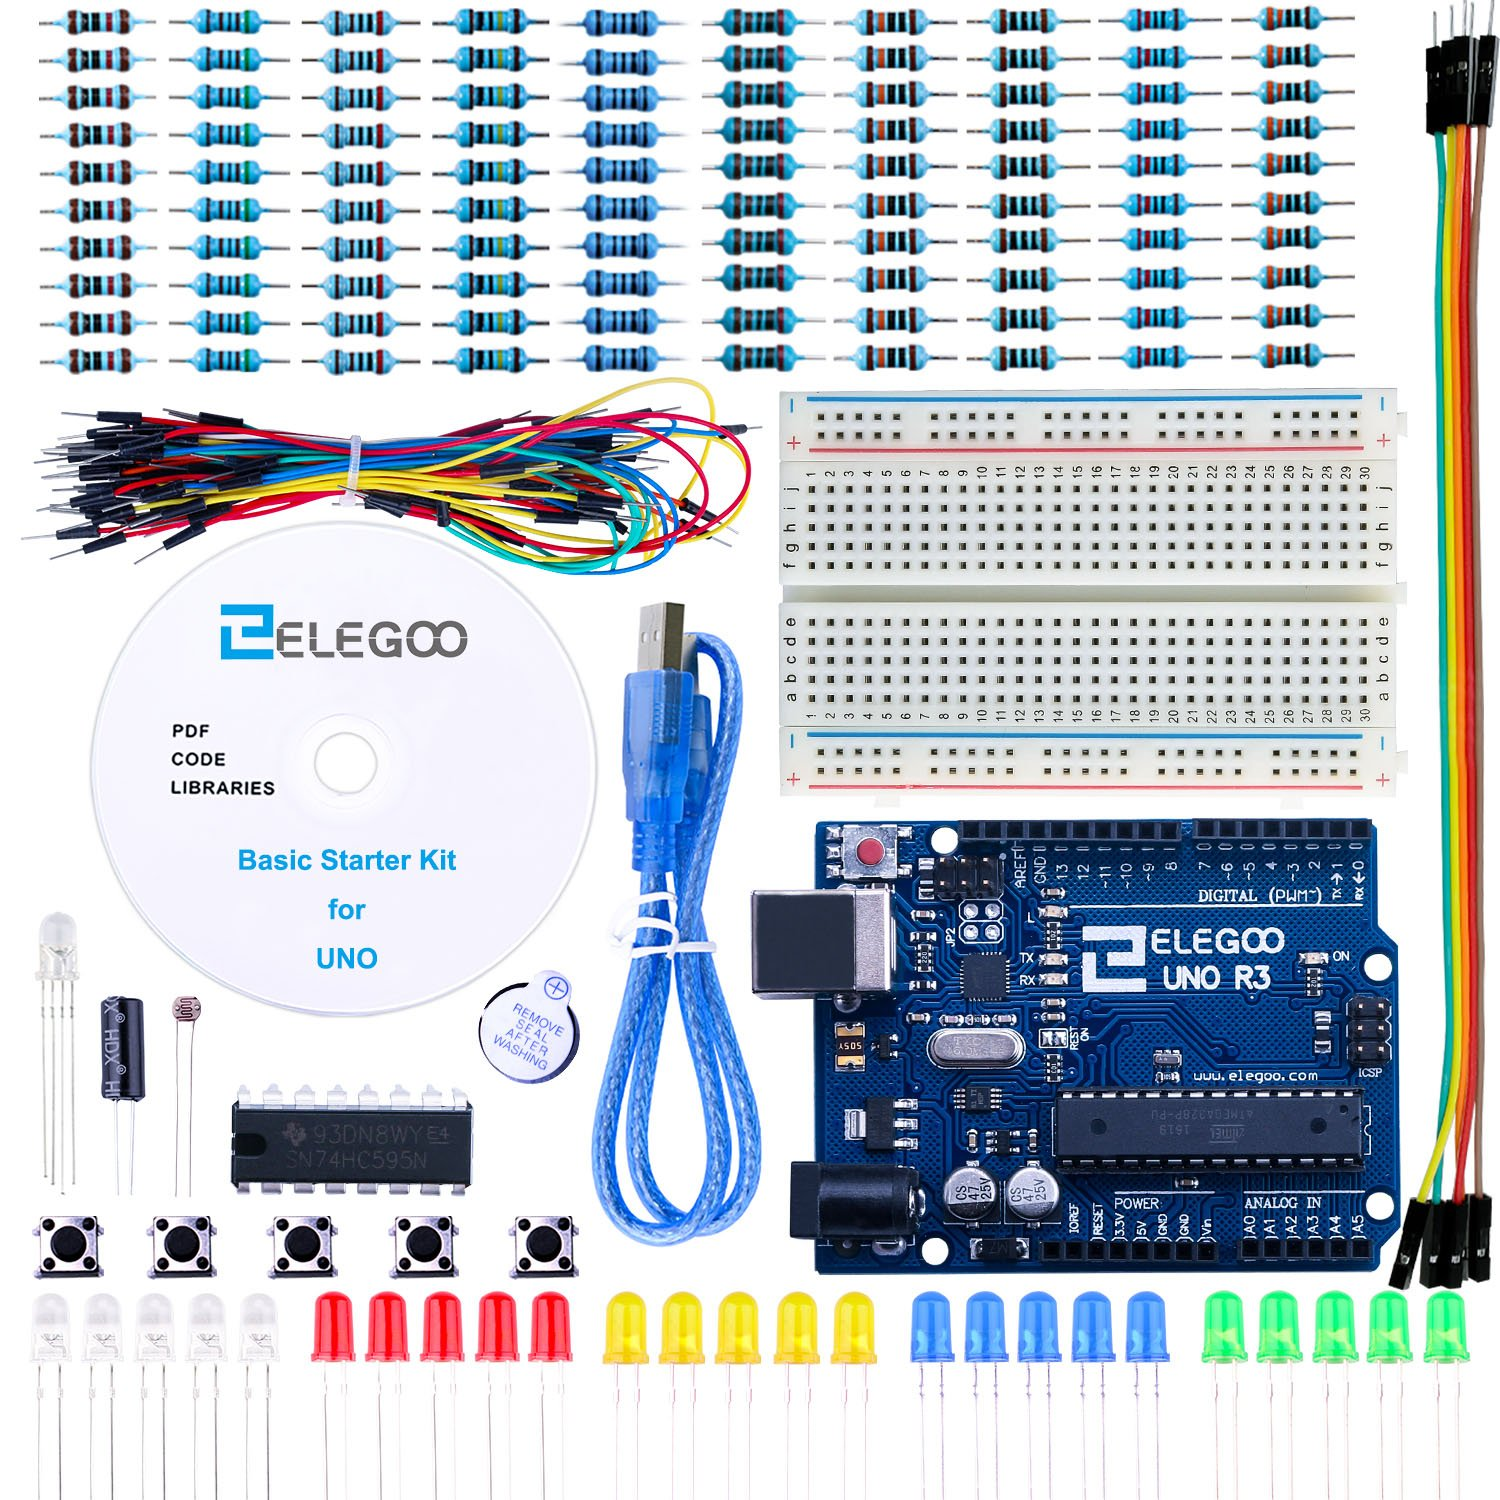 Elegoo El Kit 004 Uno Project Basic Starter With Wiring Arduino Tutorial And R3 For Industrial Scientific